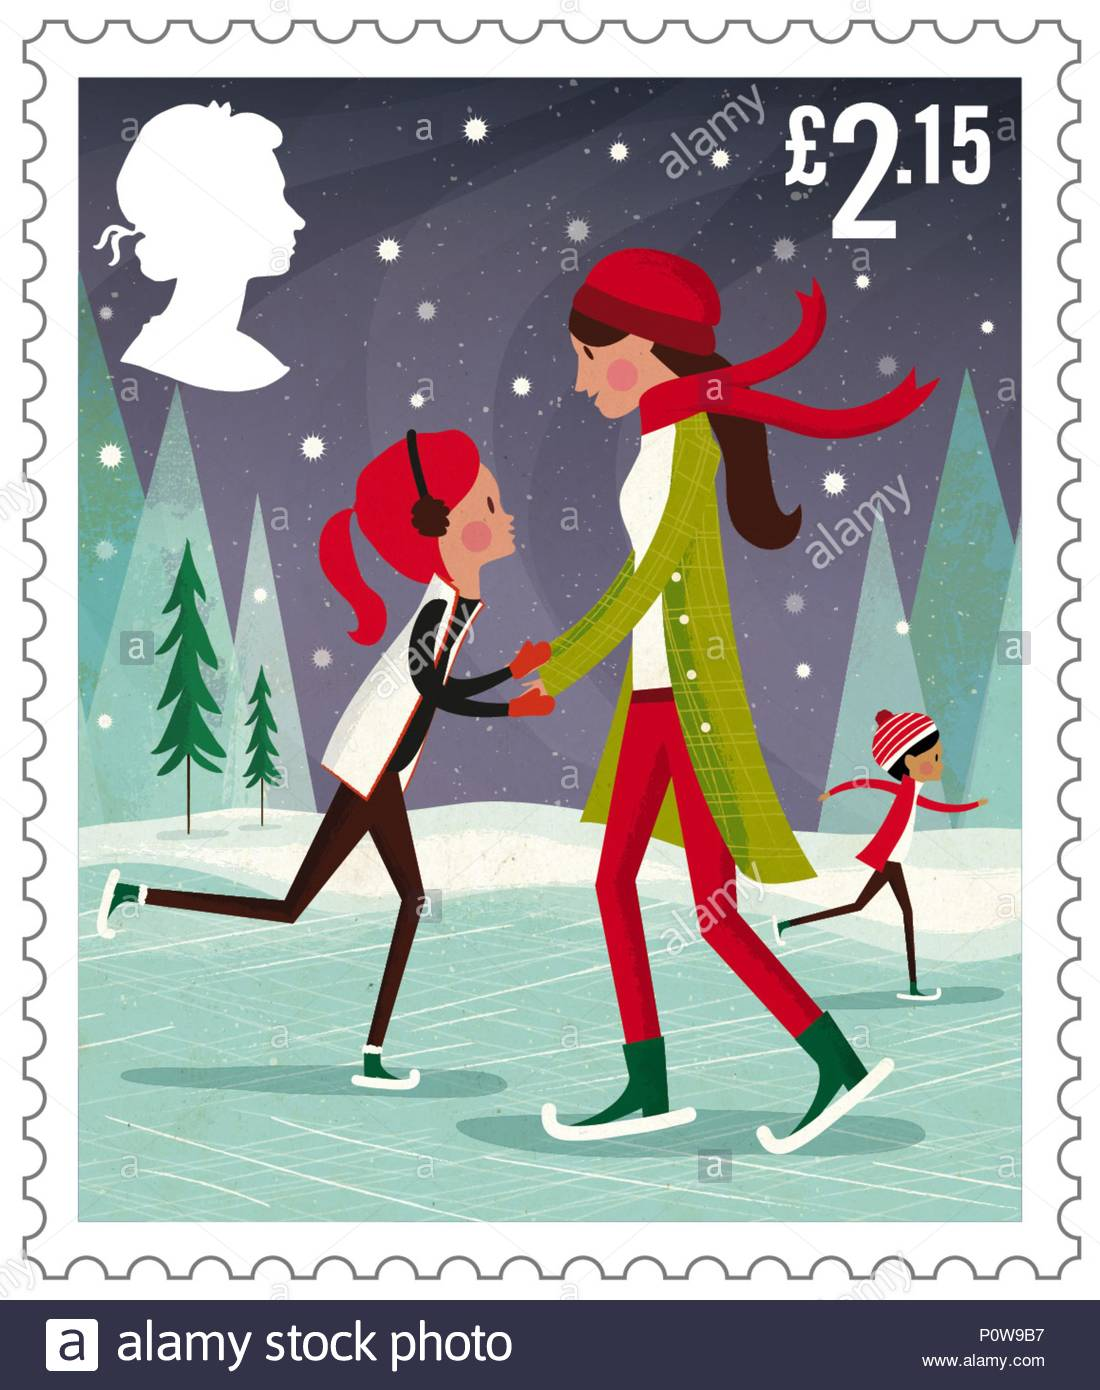 Royal mail launches its 2014 christmas stampsyal mail today royal mail launches its 2014 christmas stampsyal mail today announced the launch of the 2014 christmas stamps the stamps depict various christmas m4hsunfo